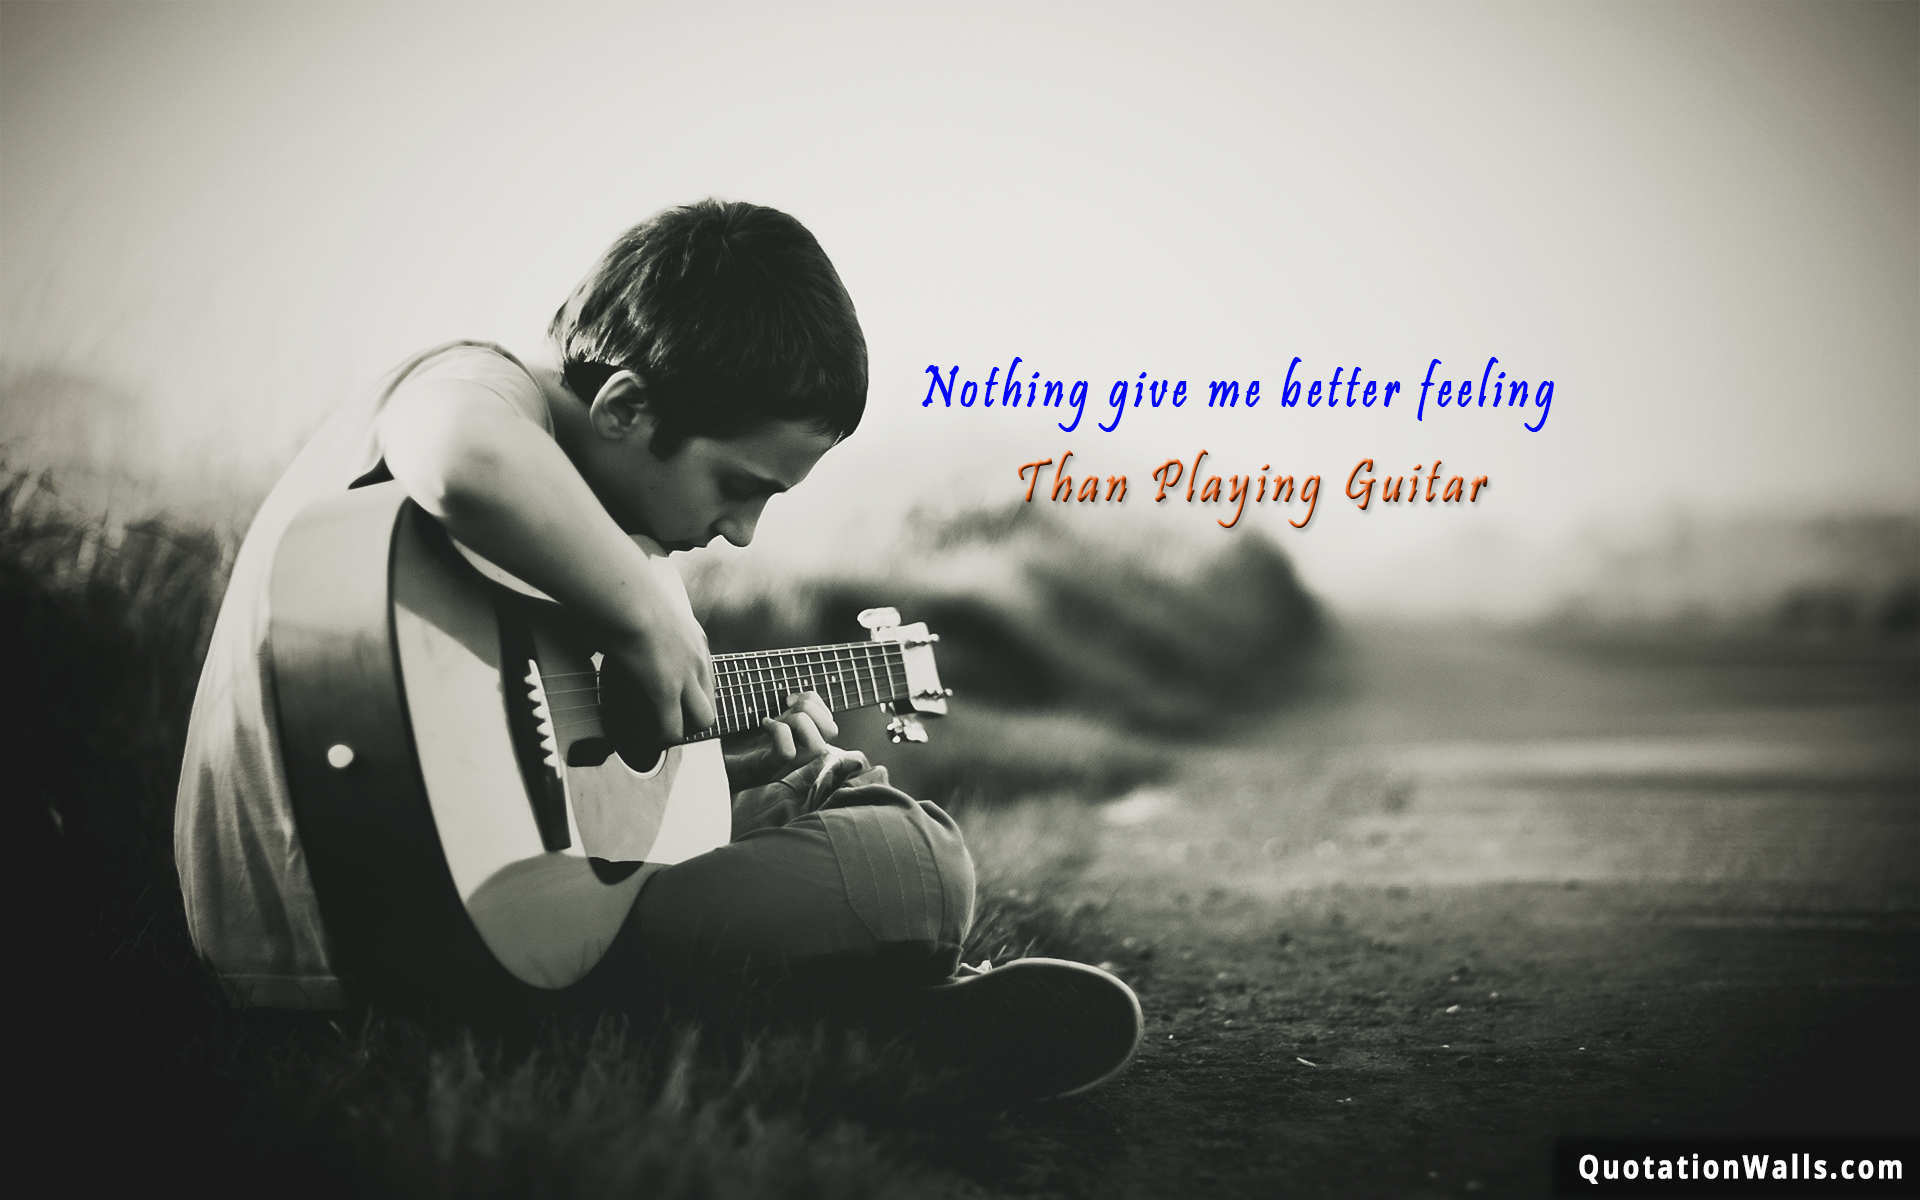 Attitude Love Wallpaper In Hd : Guitar Feeling Life Wallpaper for Mobile - QuotationWalls